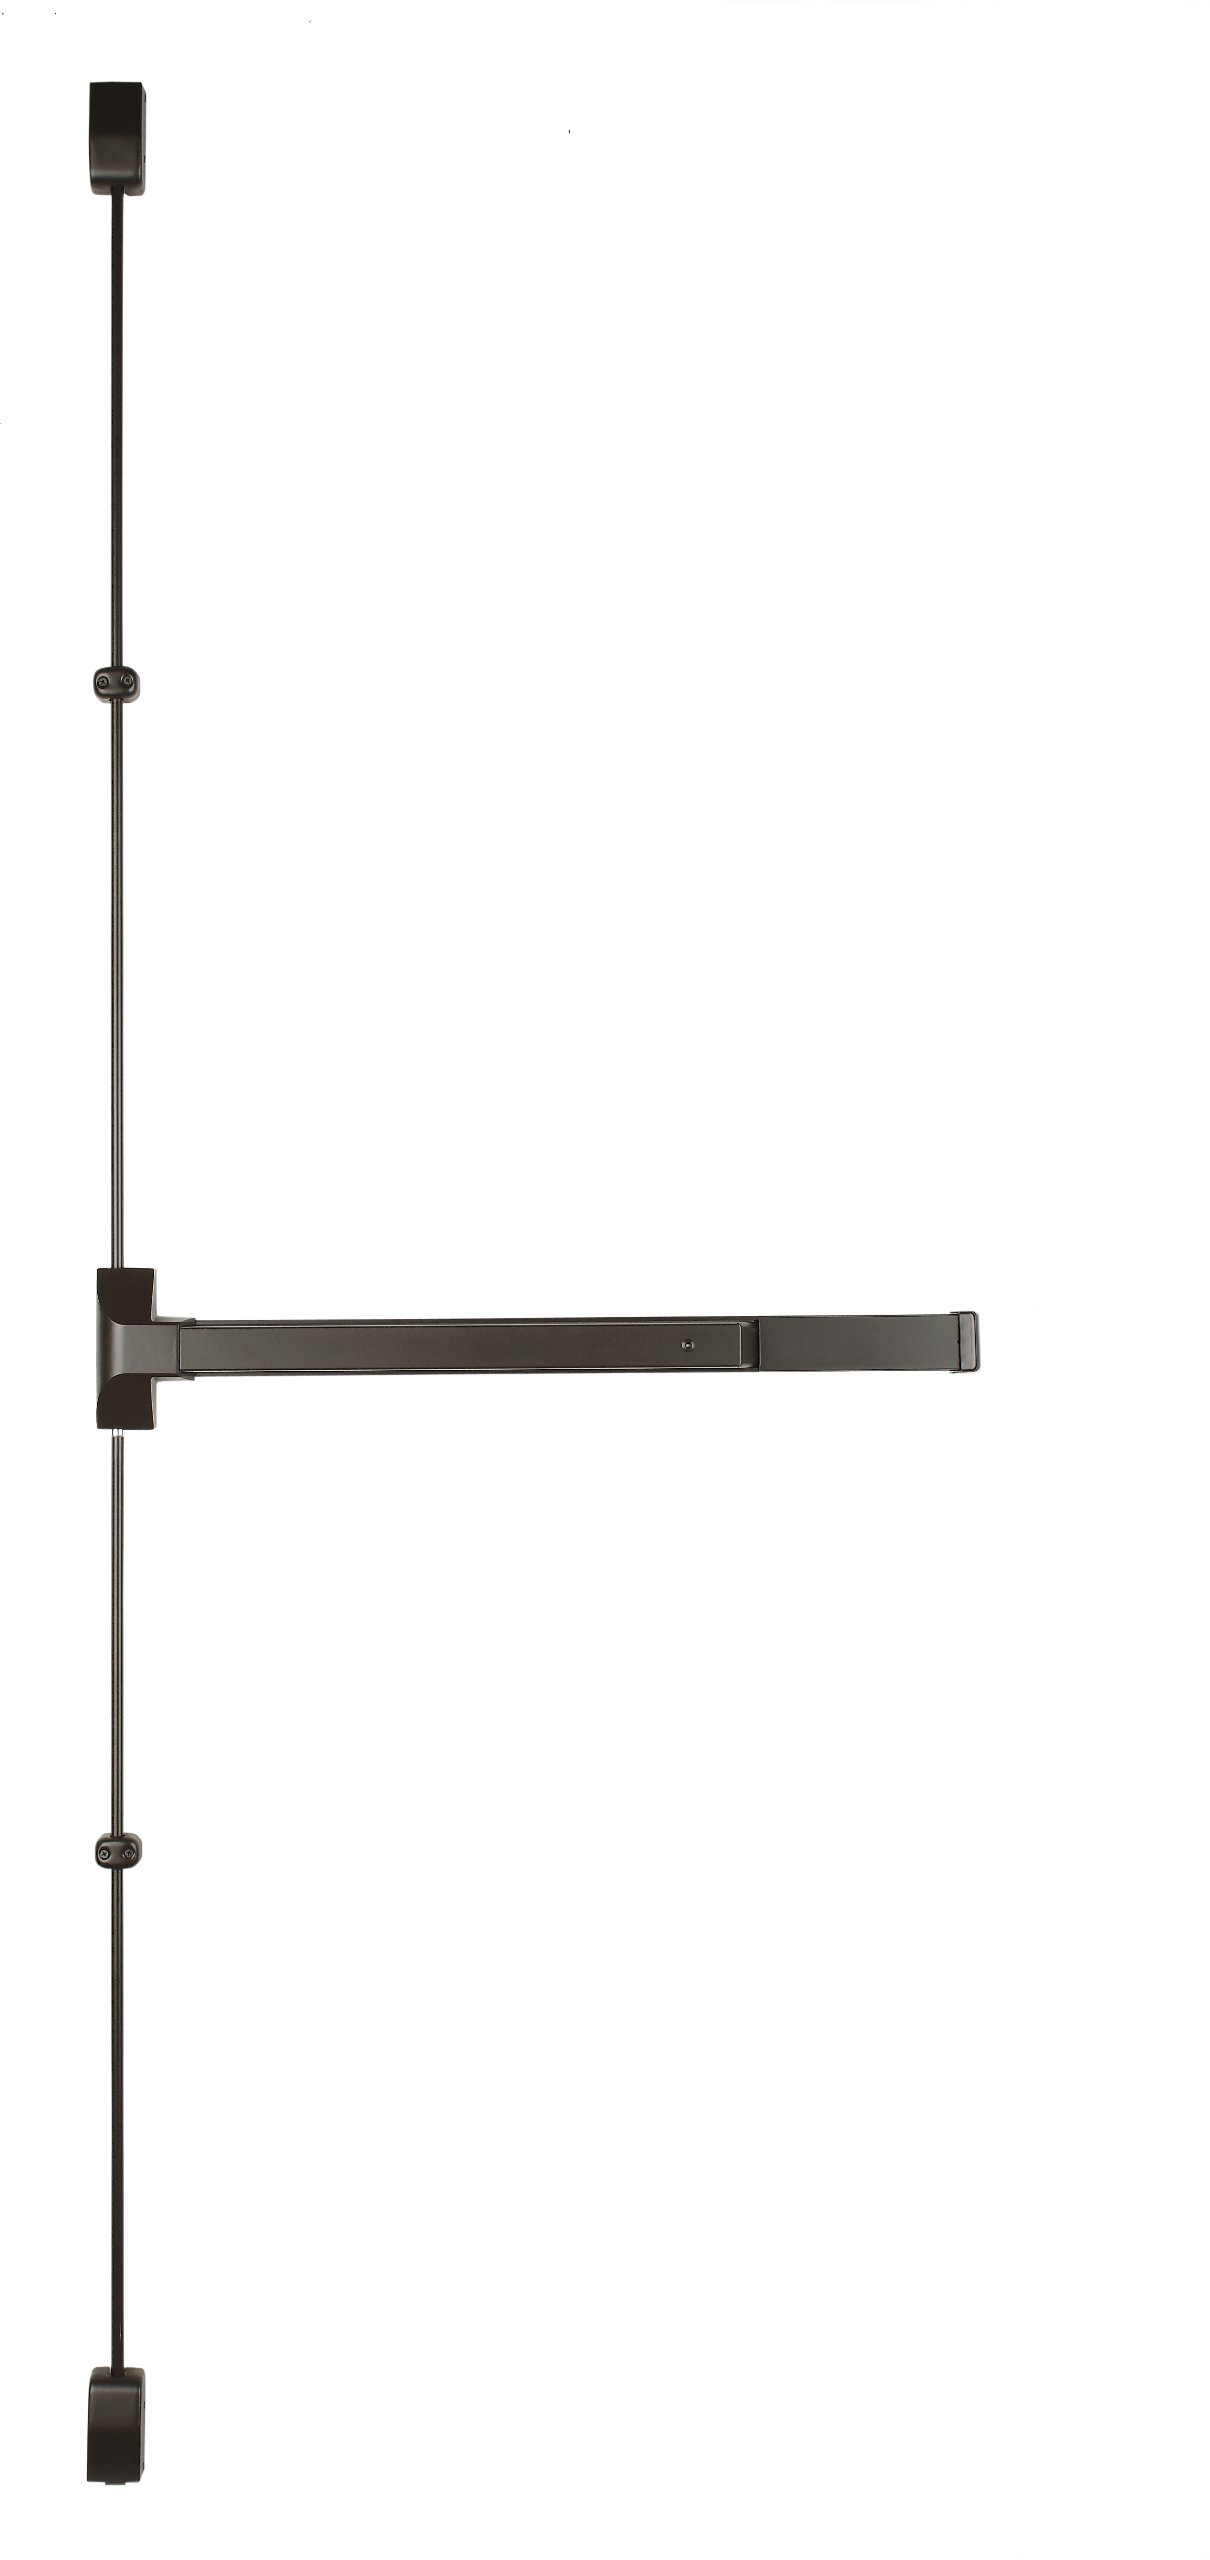 Copper Creek V9560-DB-36 Grade 1 Vertical Rod Exit 36-Inch Wide Dura, Bronze by Copper Creek